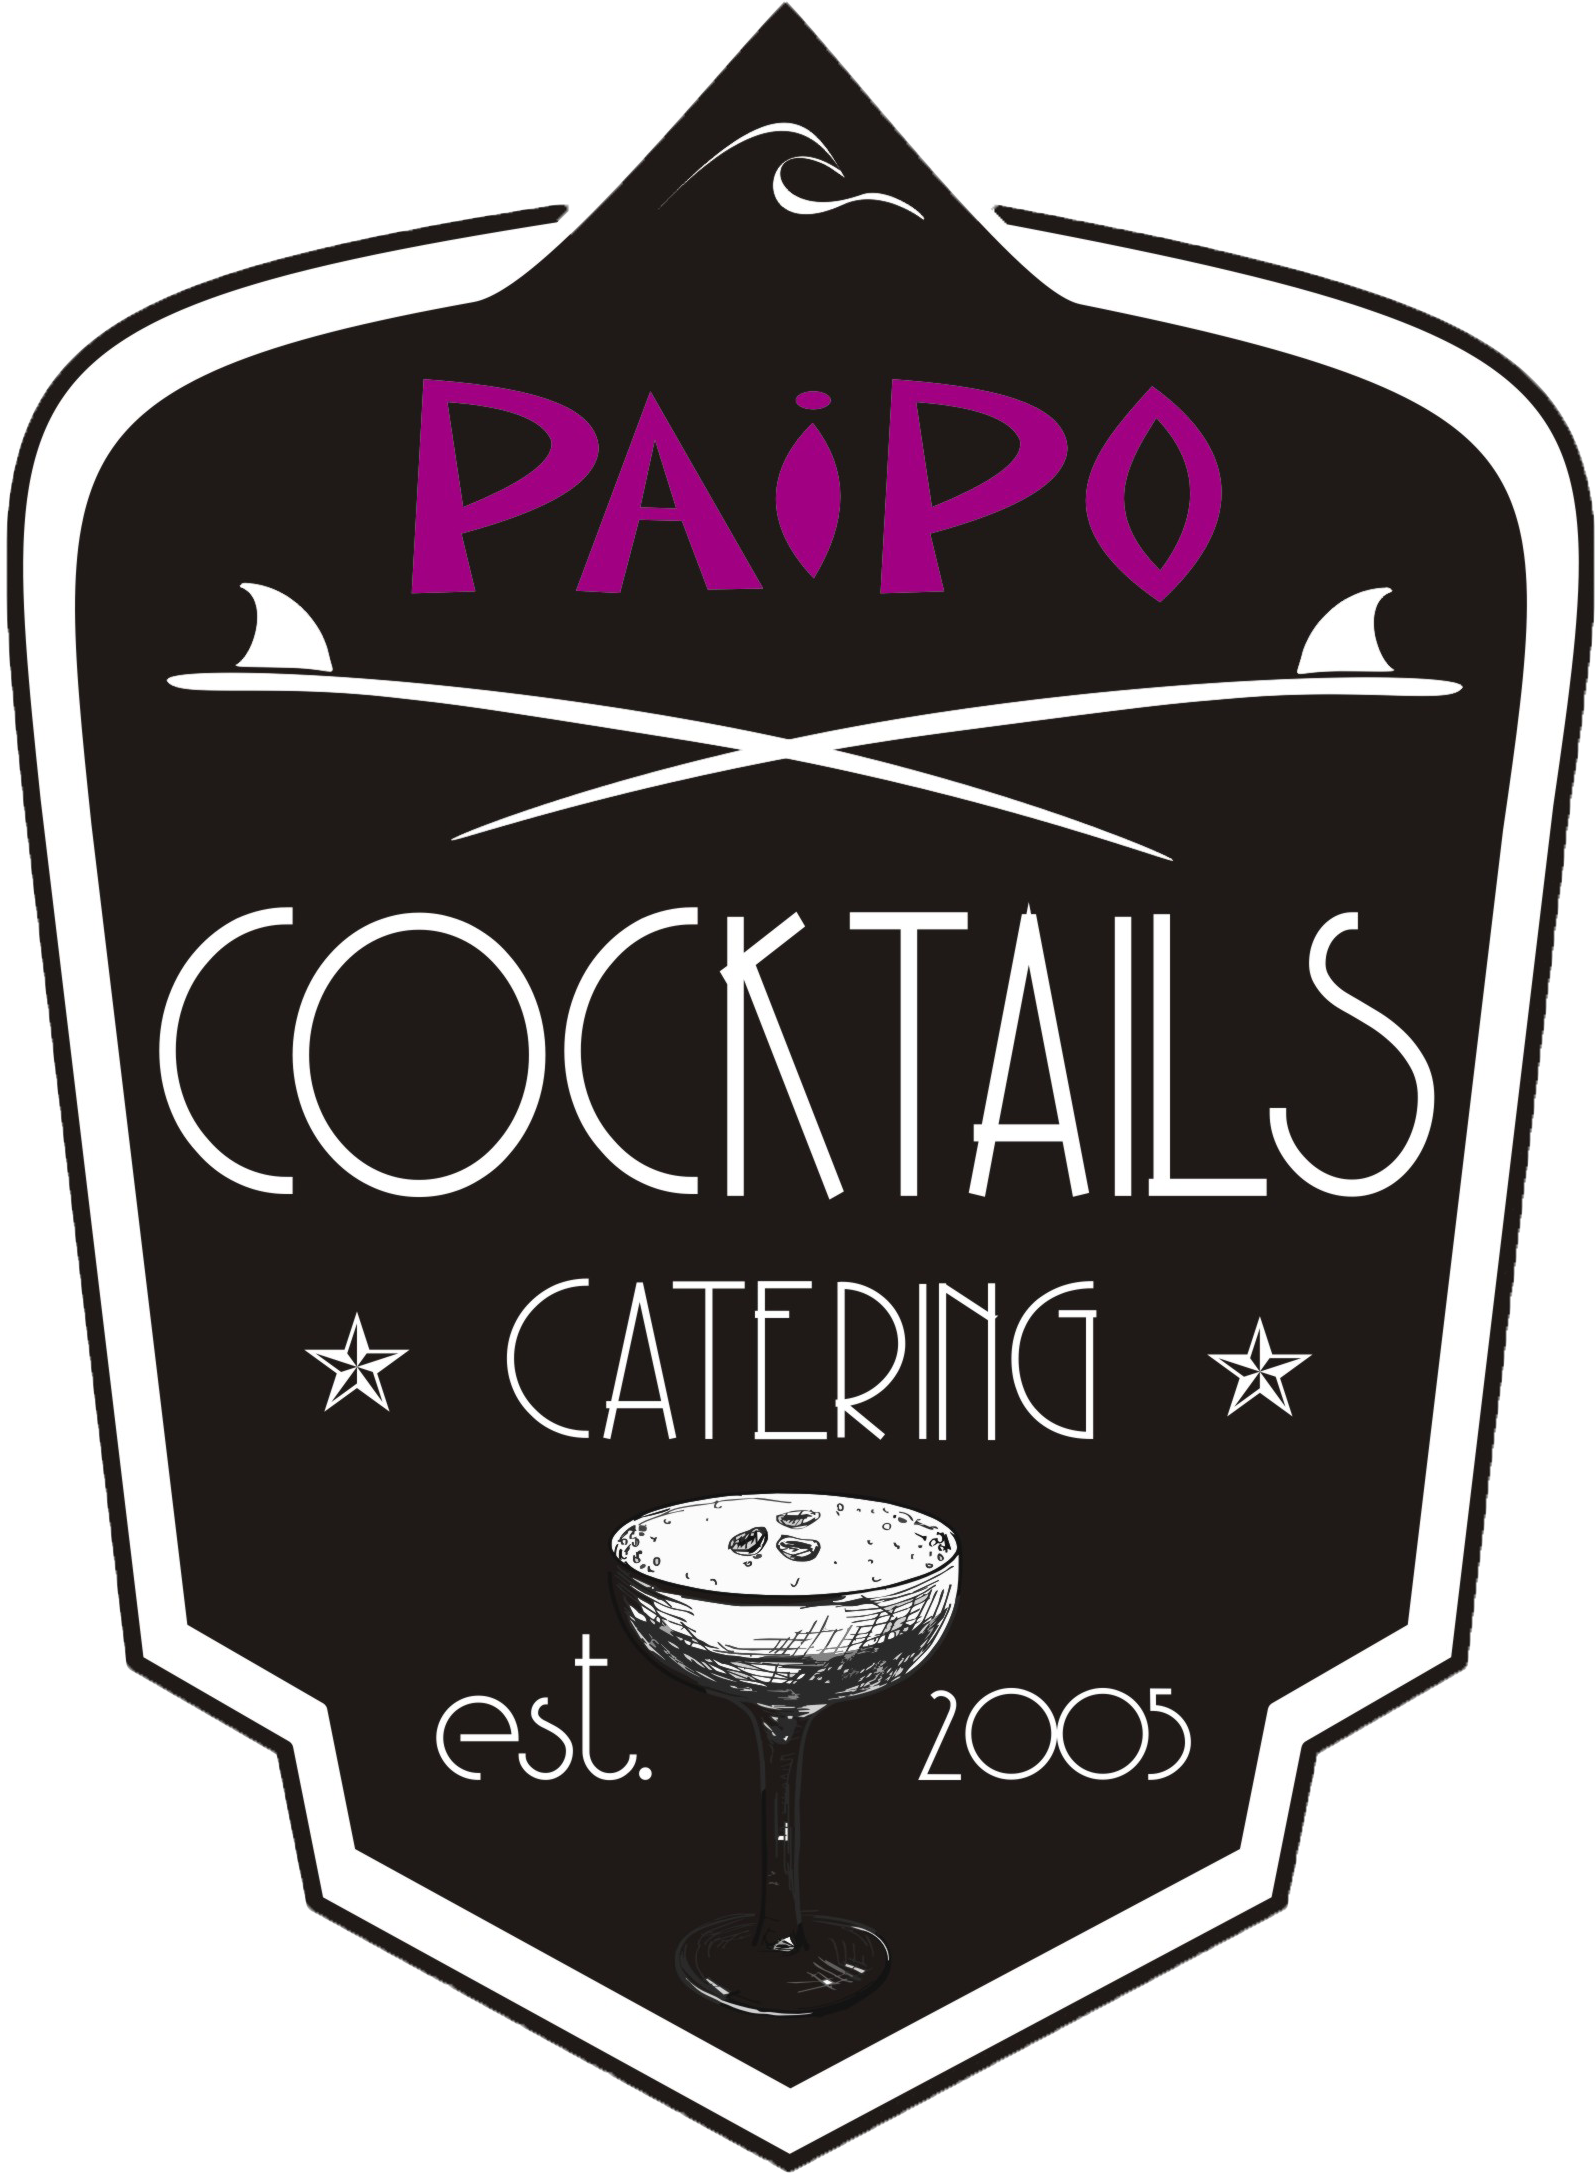 Paipo Cocktails Catering